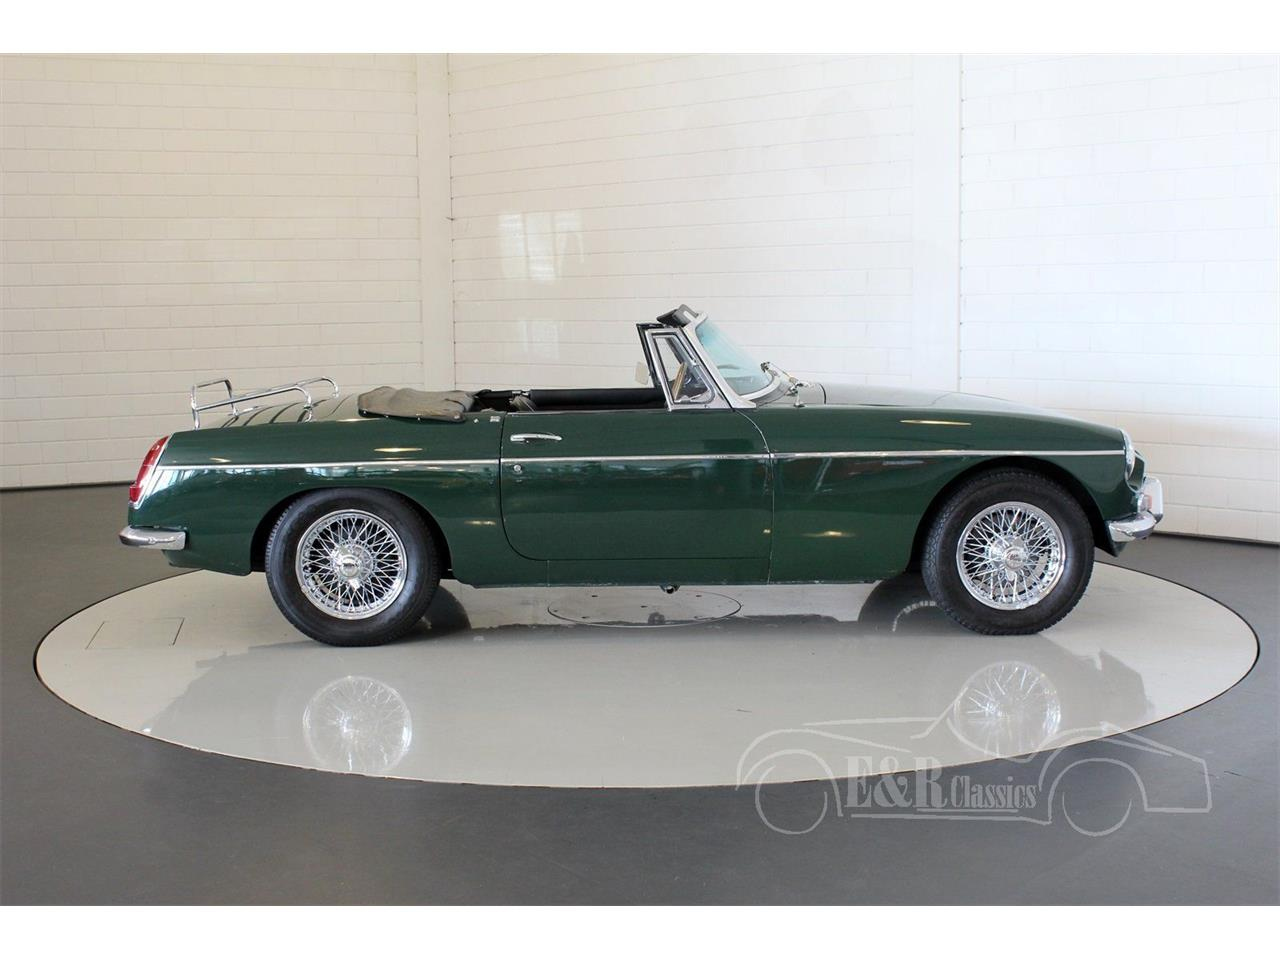 Large Picture of '64 MG MGB located in Waalwijk noord brabant - $27,950.00 Offered by E & R Classics - Q178